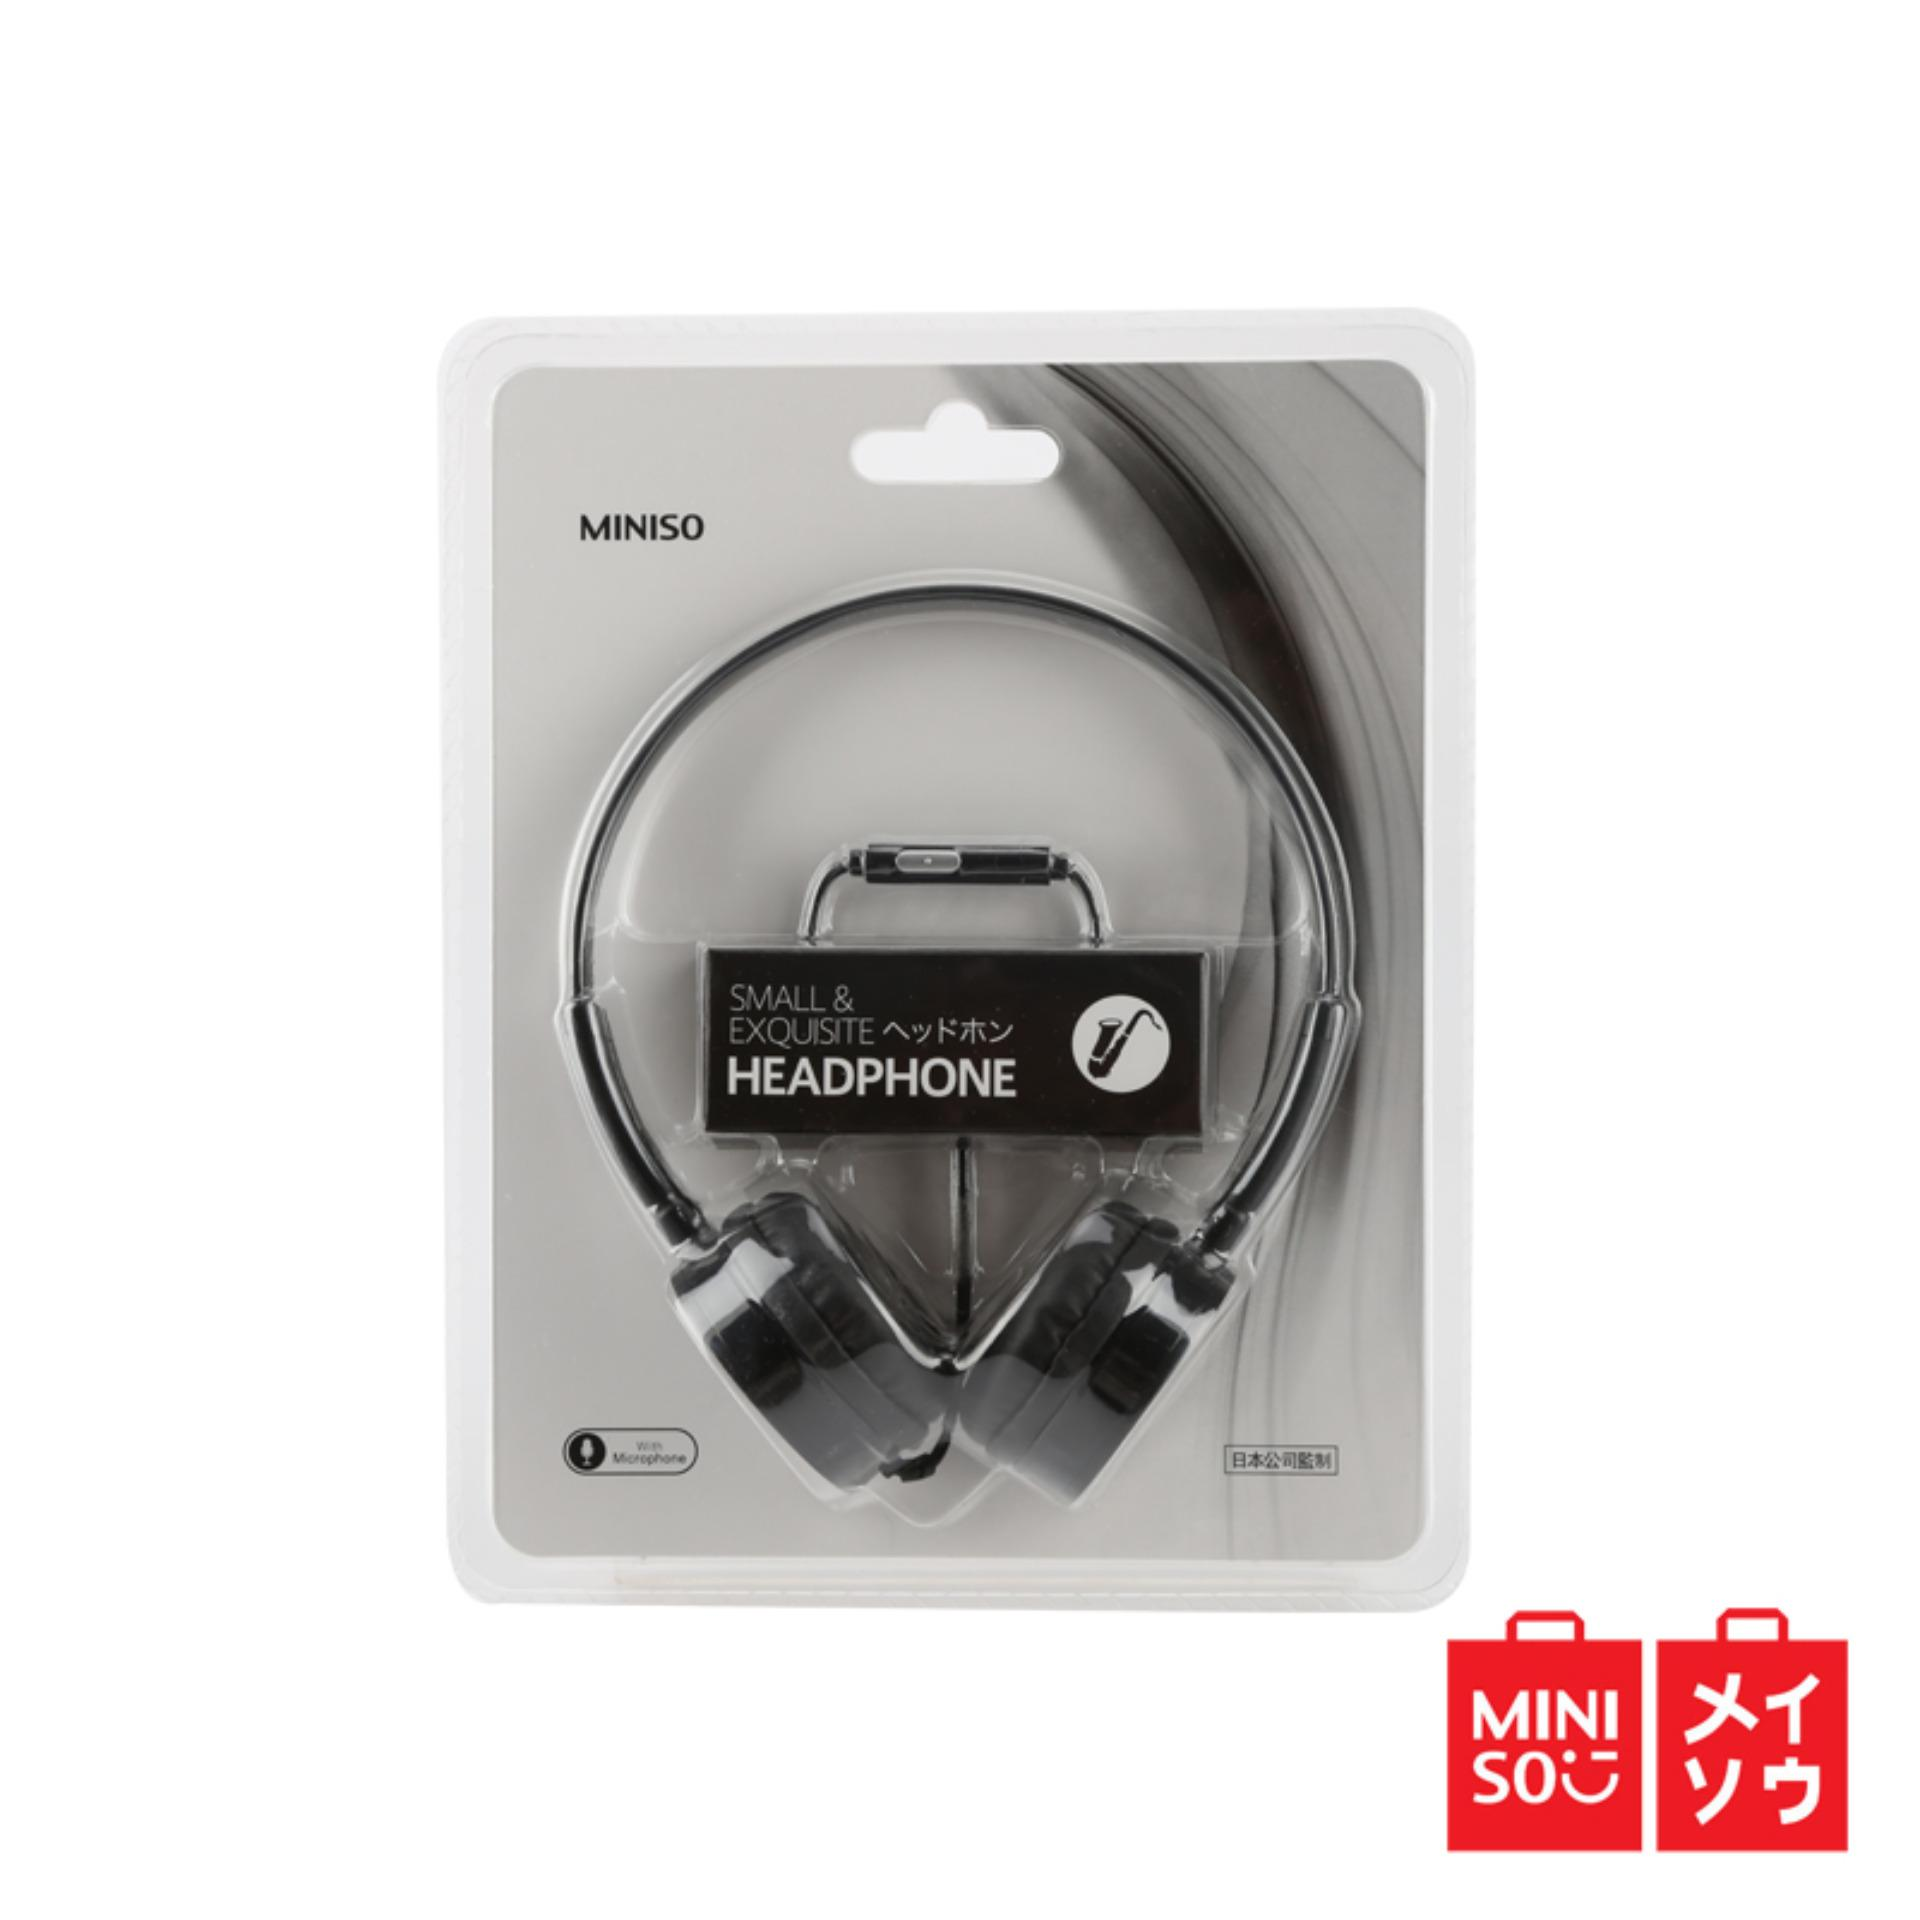 Miniso Official Lovely Headphone Diskon Akhir Tahun